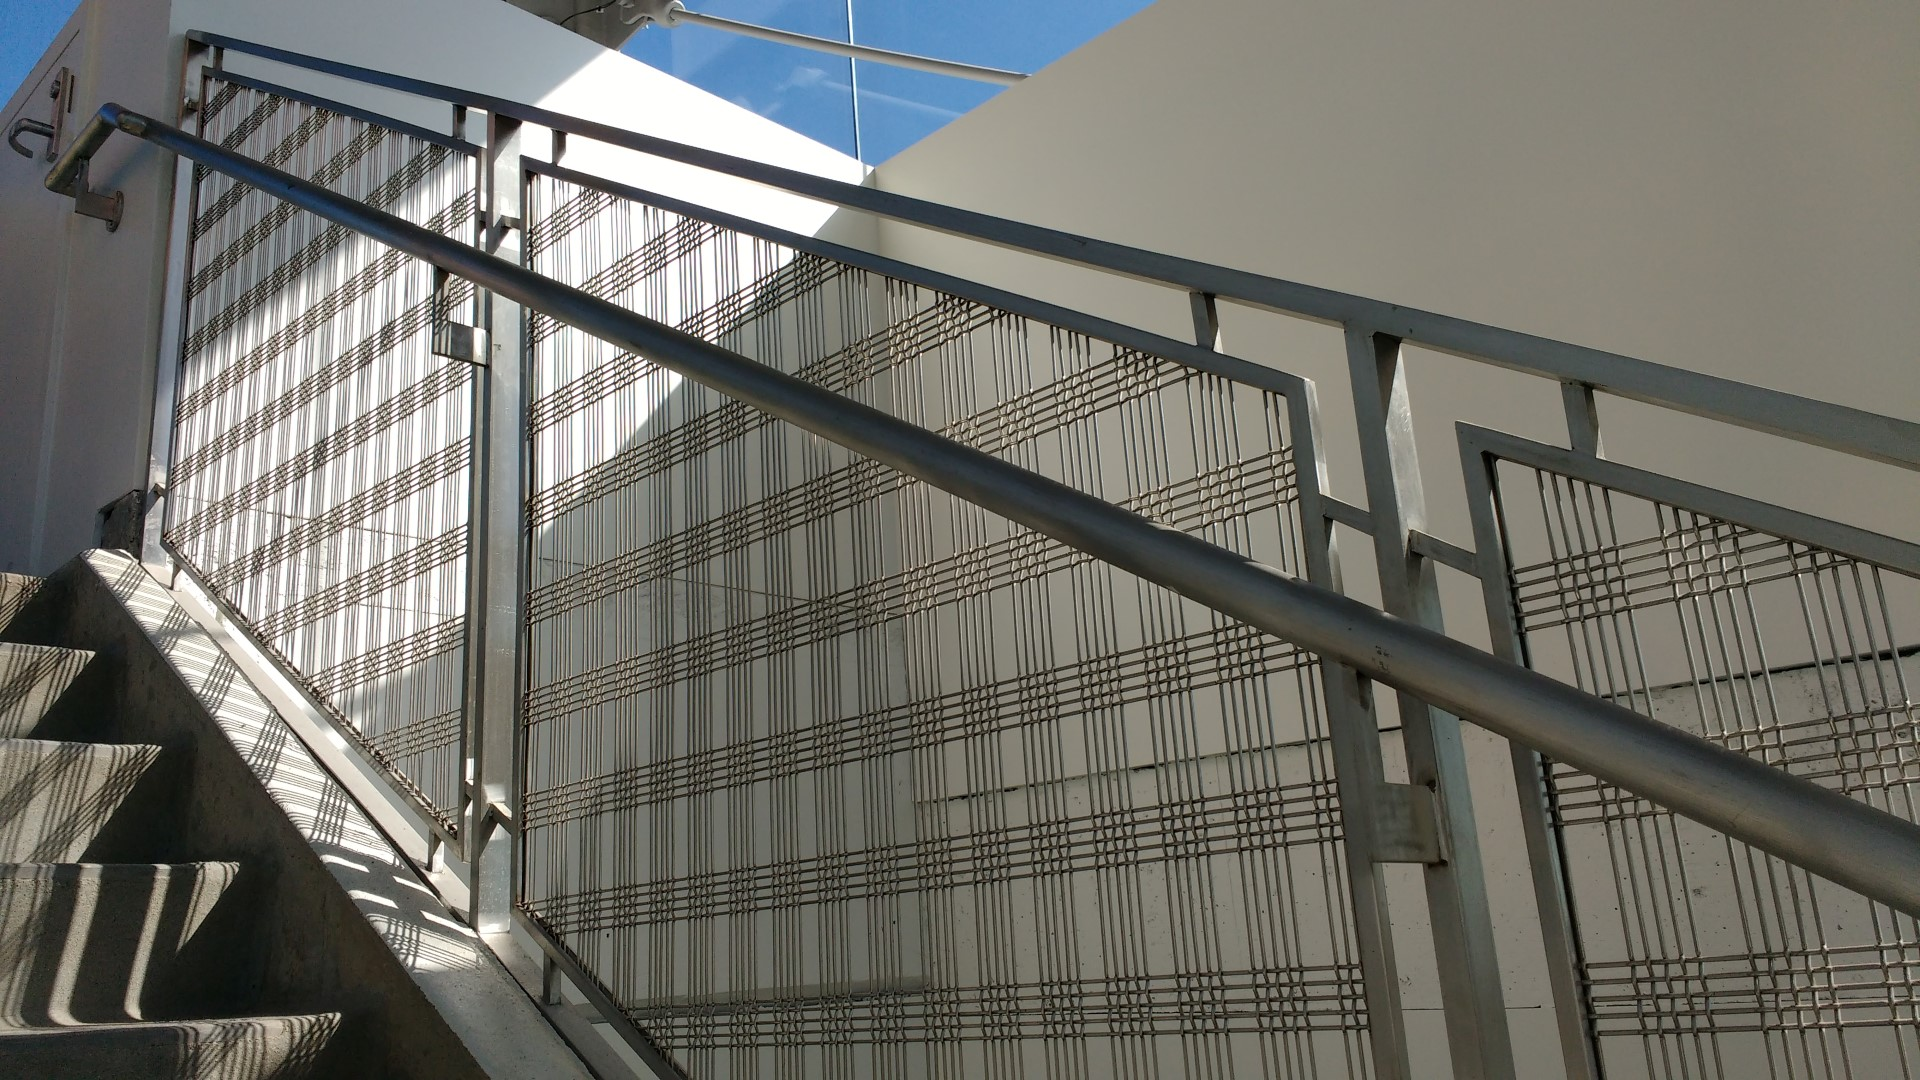 Well lit by the aboundance of southern California sunlight, the stair tower used a custom wire mesh pattern as railing infill material.